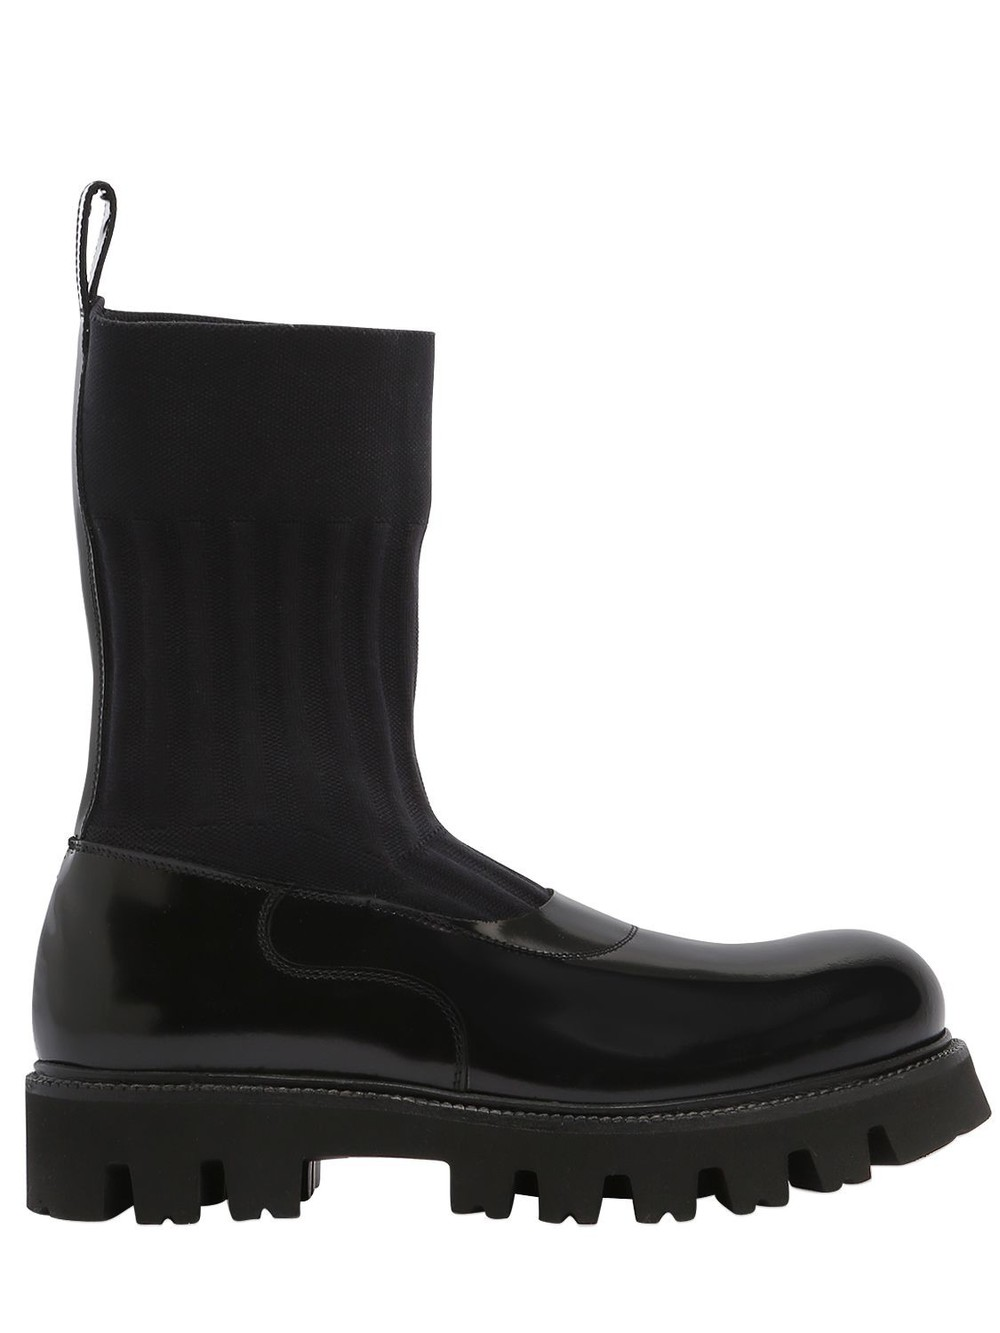 ROCCO P. 30mm Elastic & Brushed Leather Boots in black